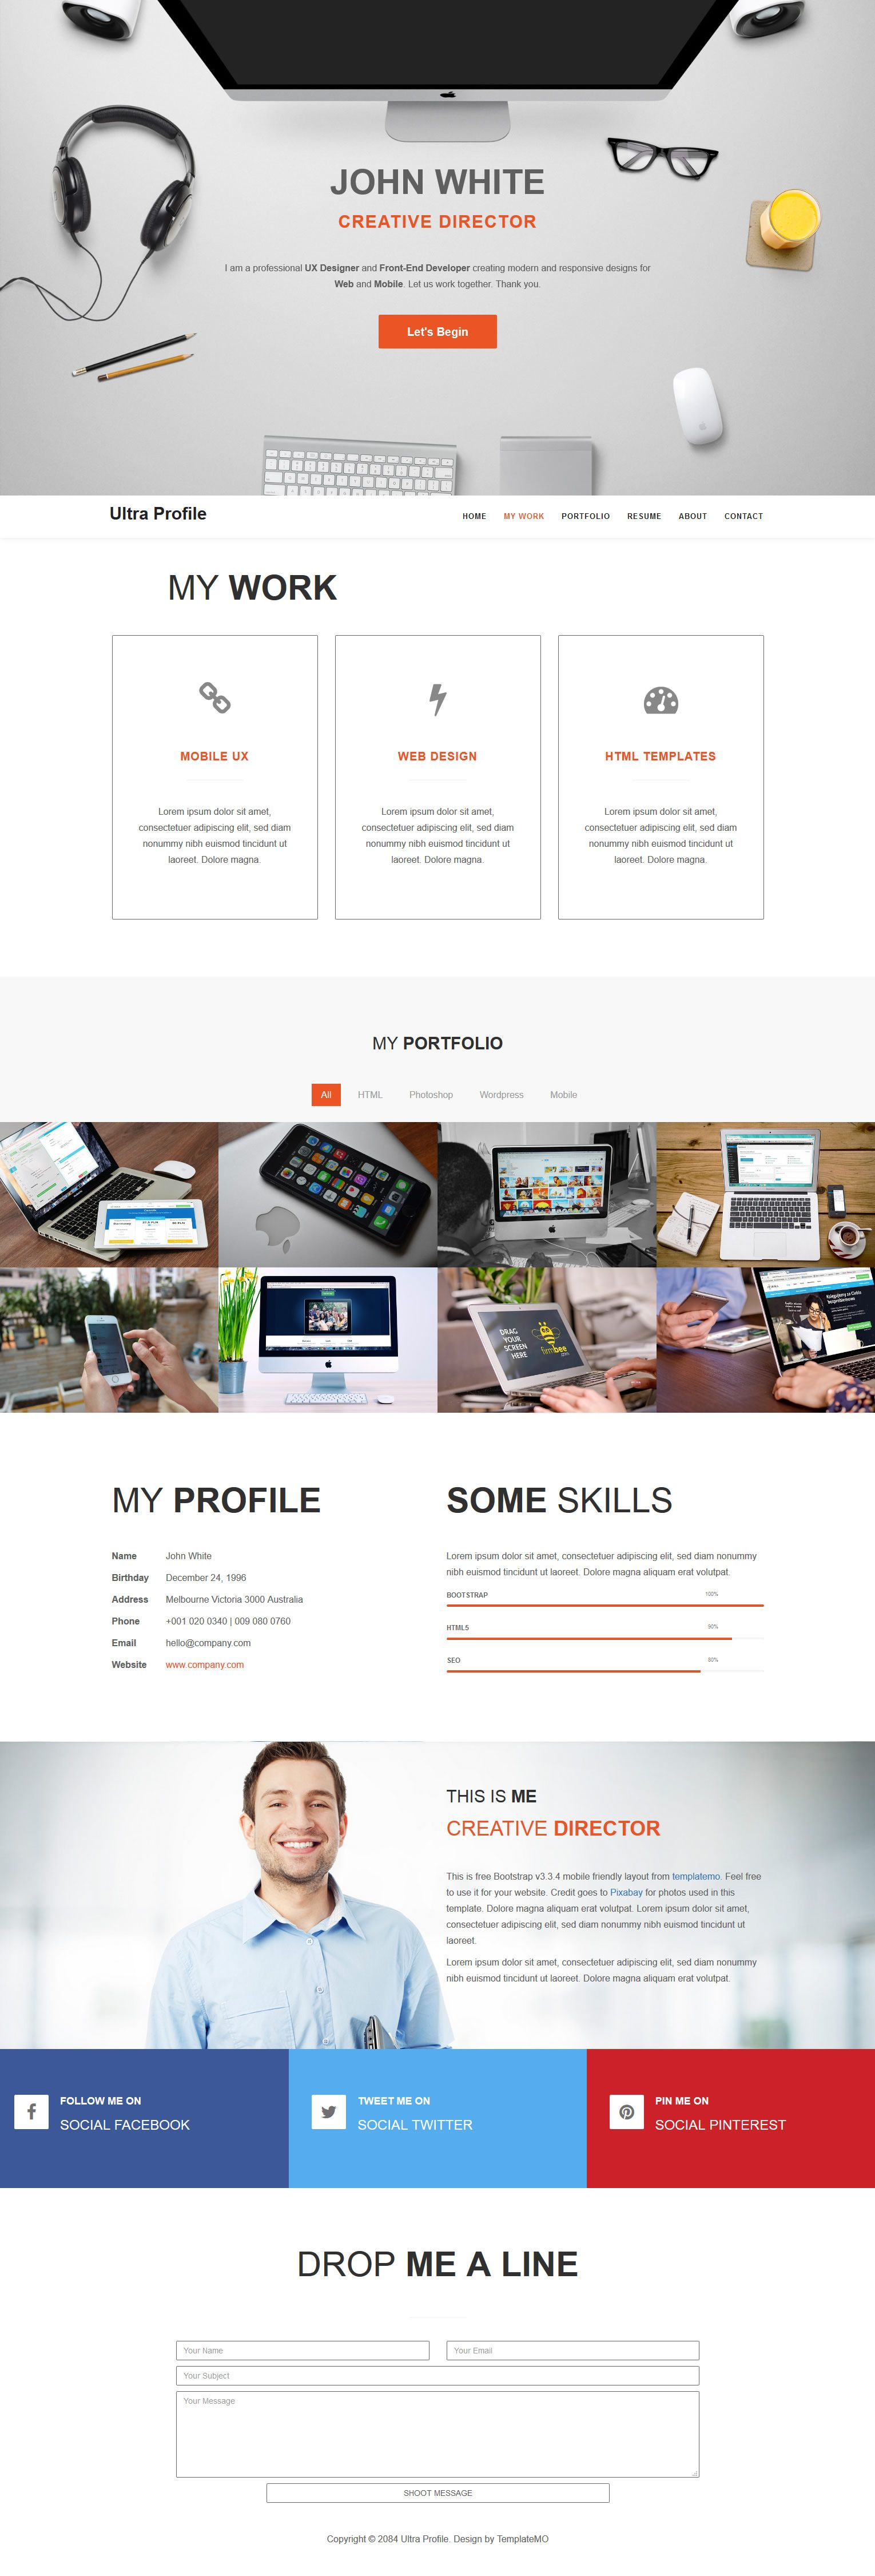 Ultra Profile is Bootstrap v3 3 4 responsive layout for online